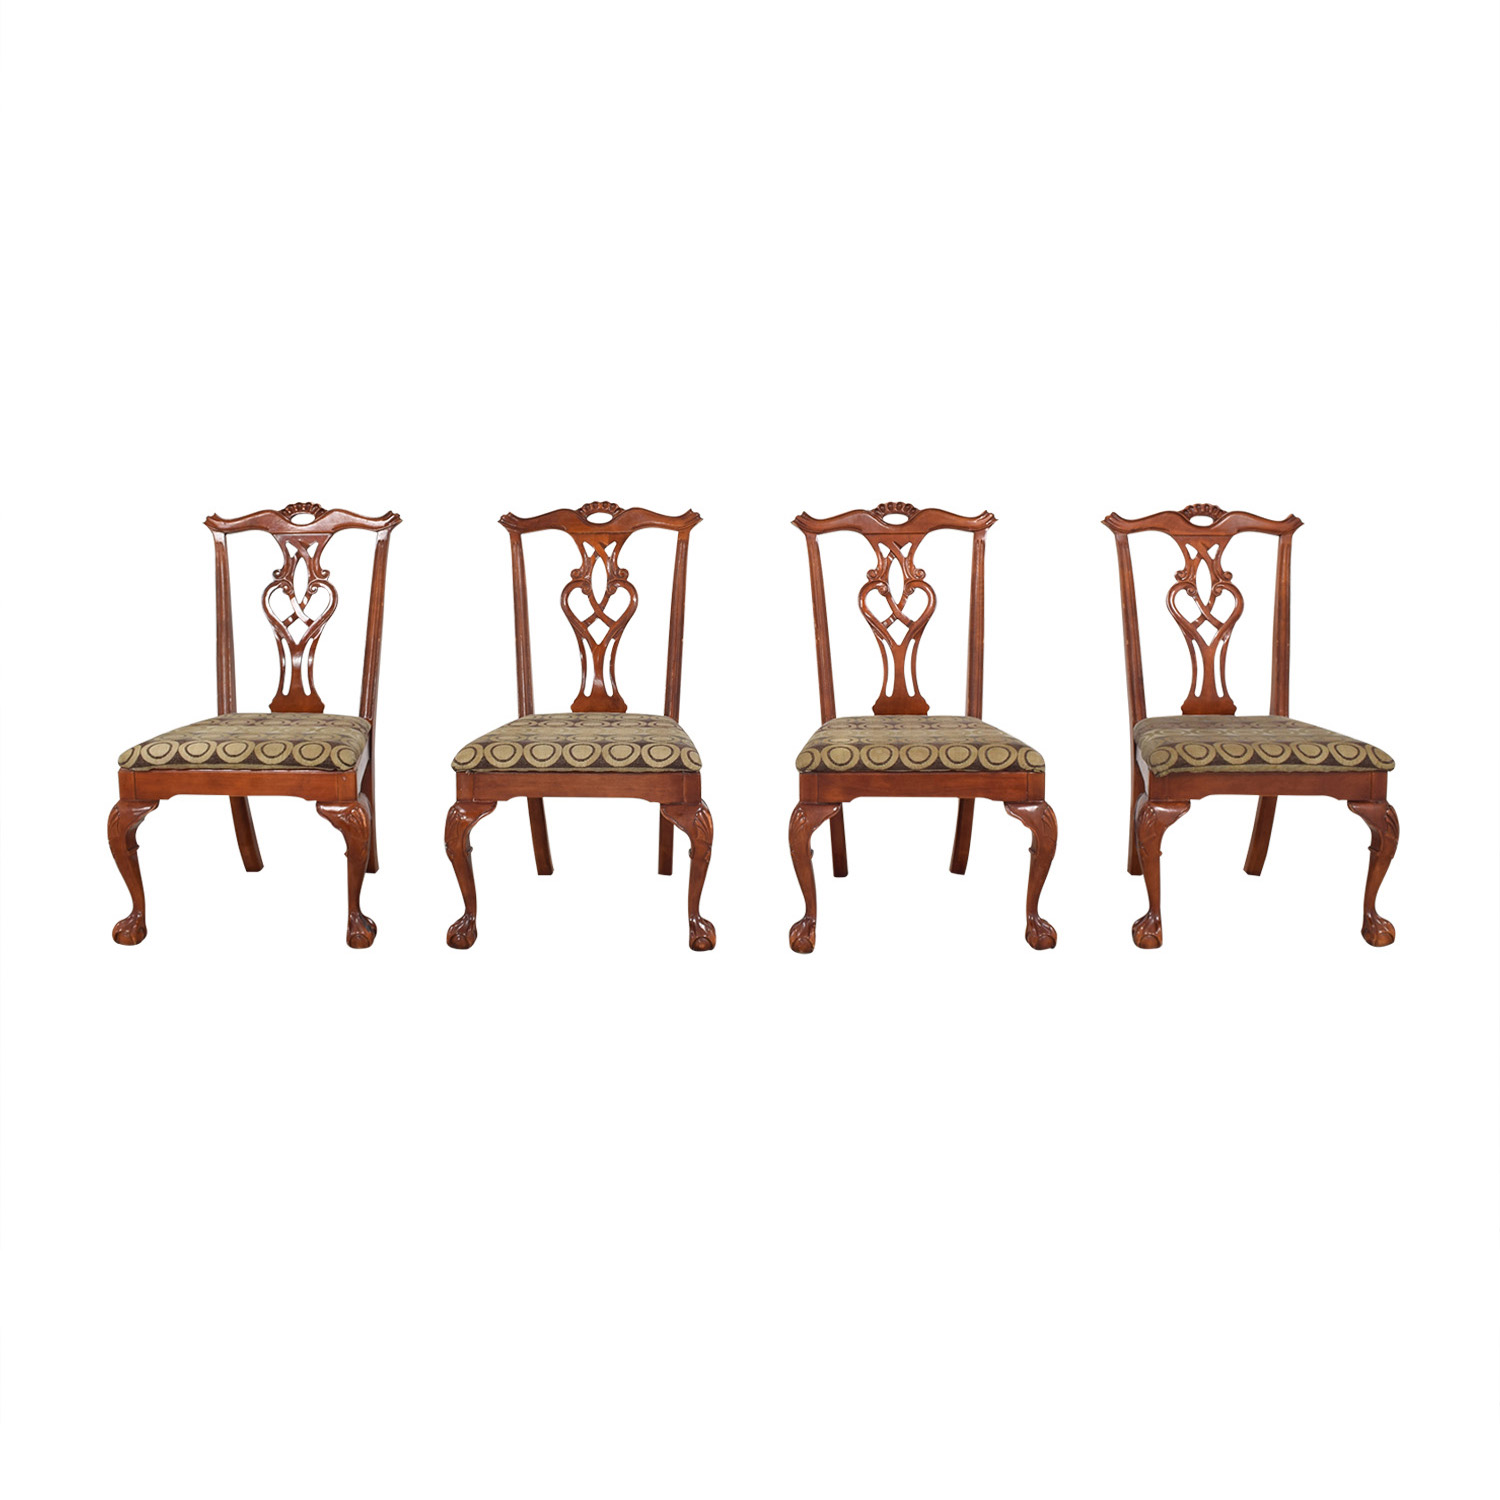 Bernhardt Bernhardt Upholstered Dining Chairs nj